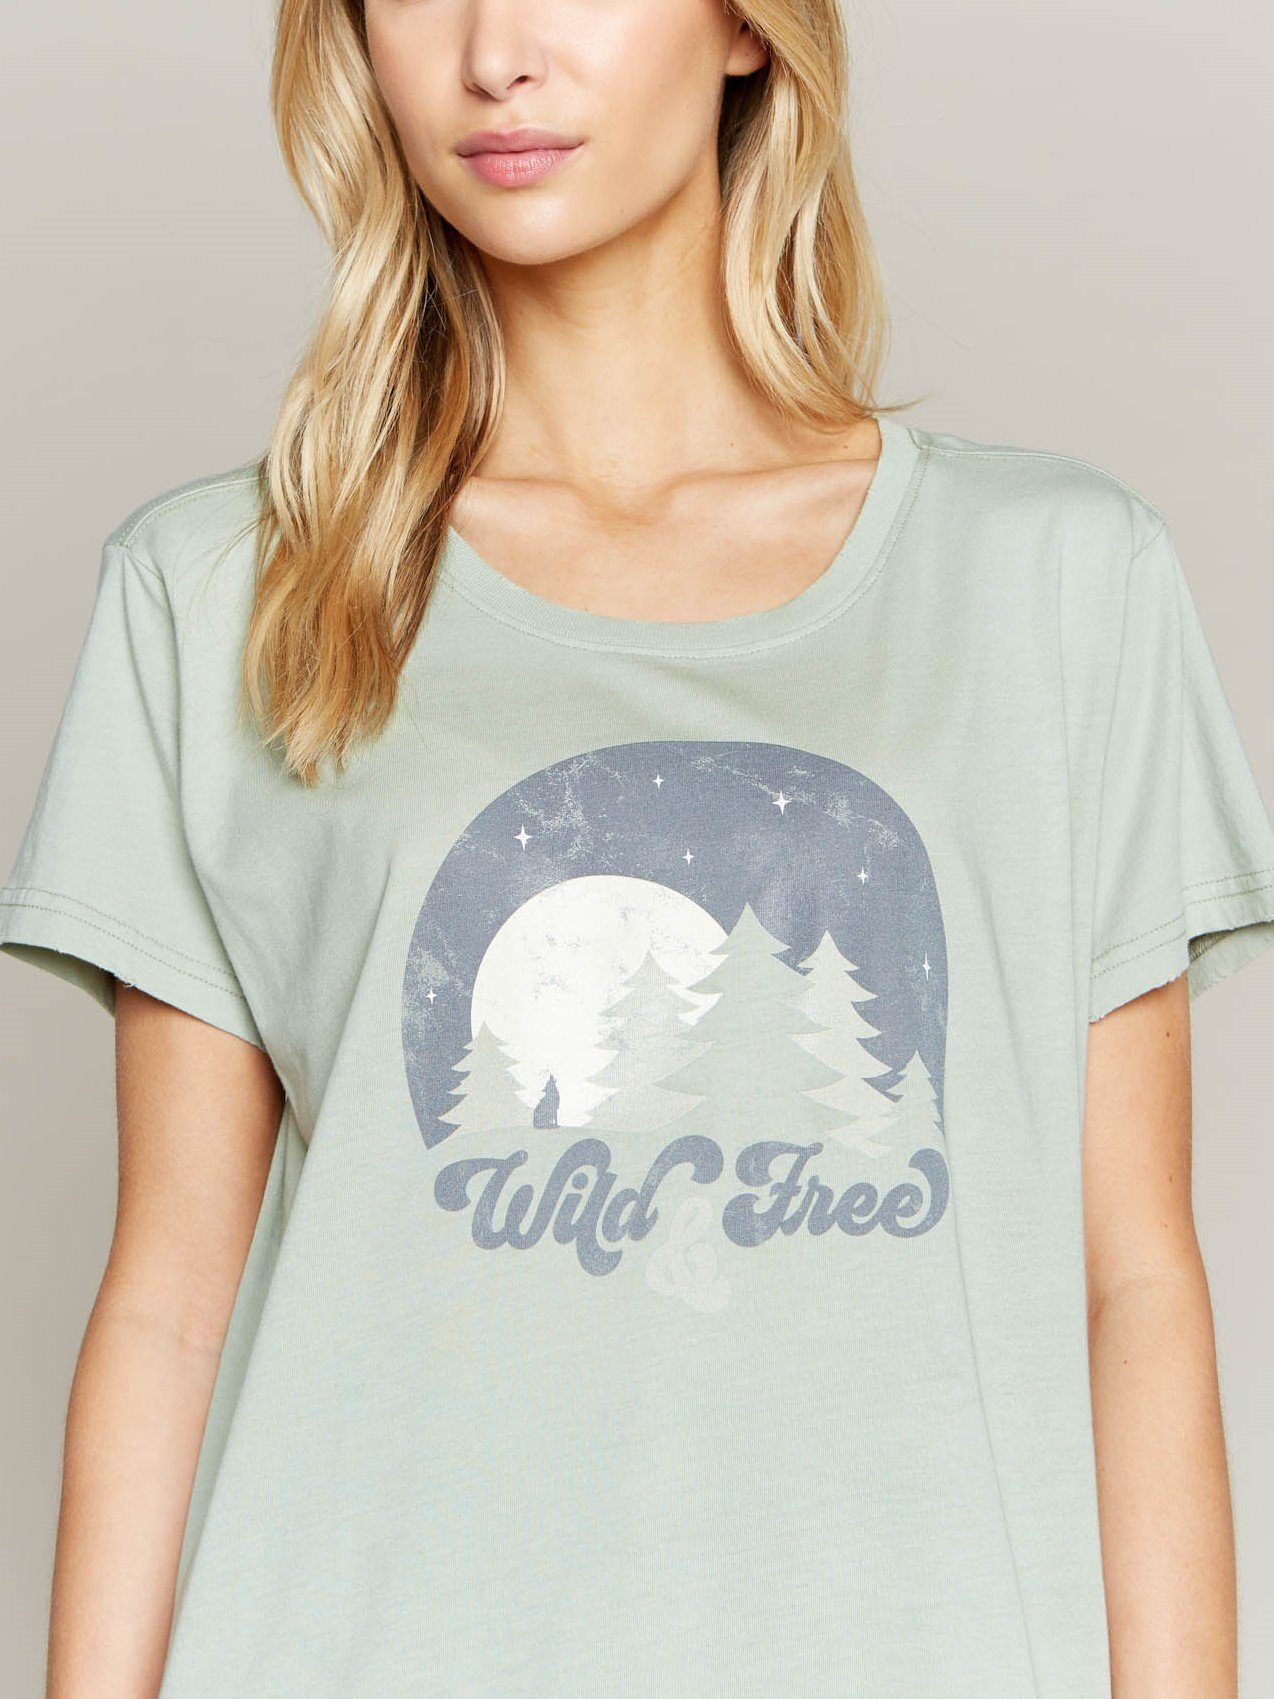 Wild & Free Tee - Thread & Supply